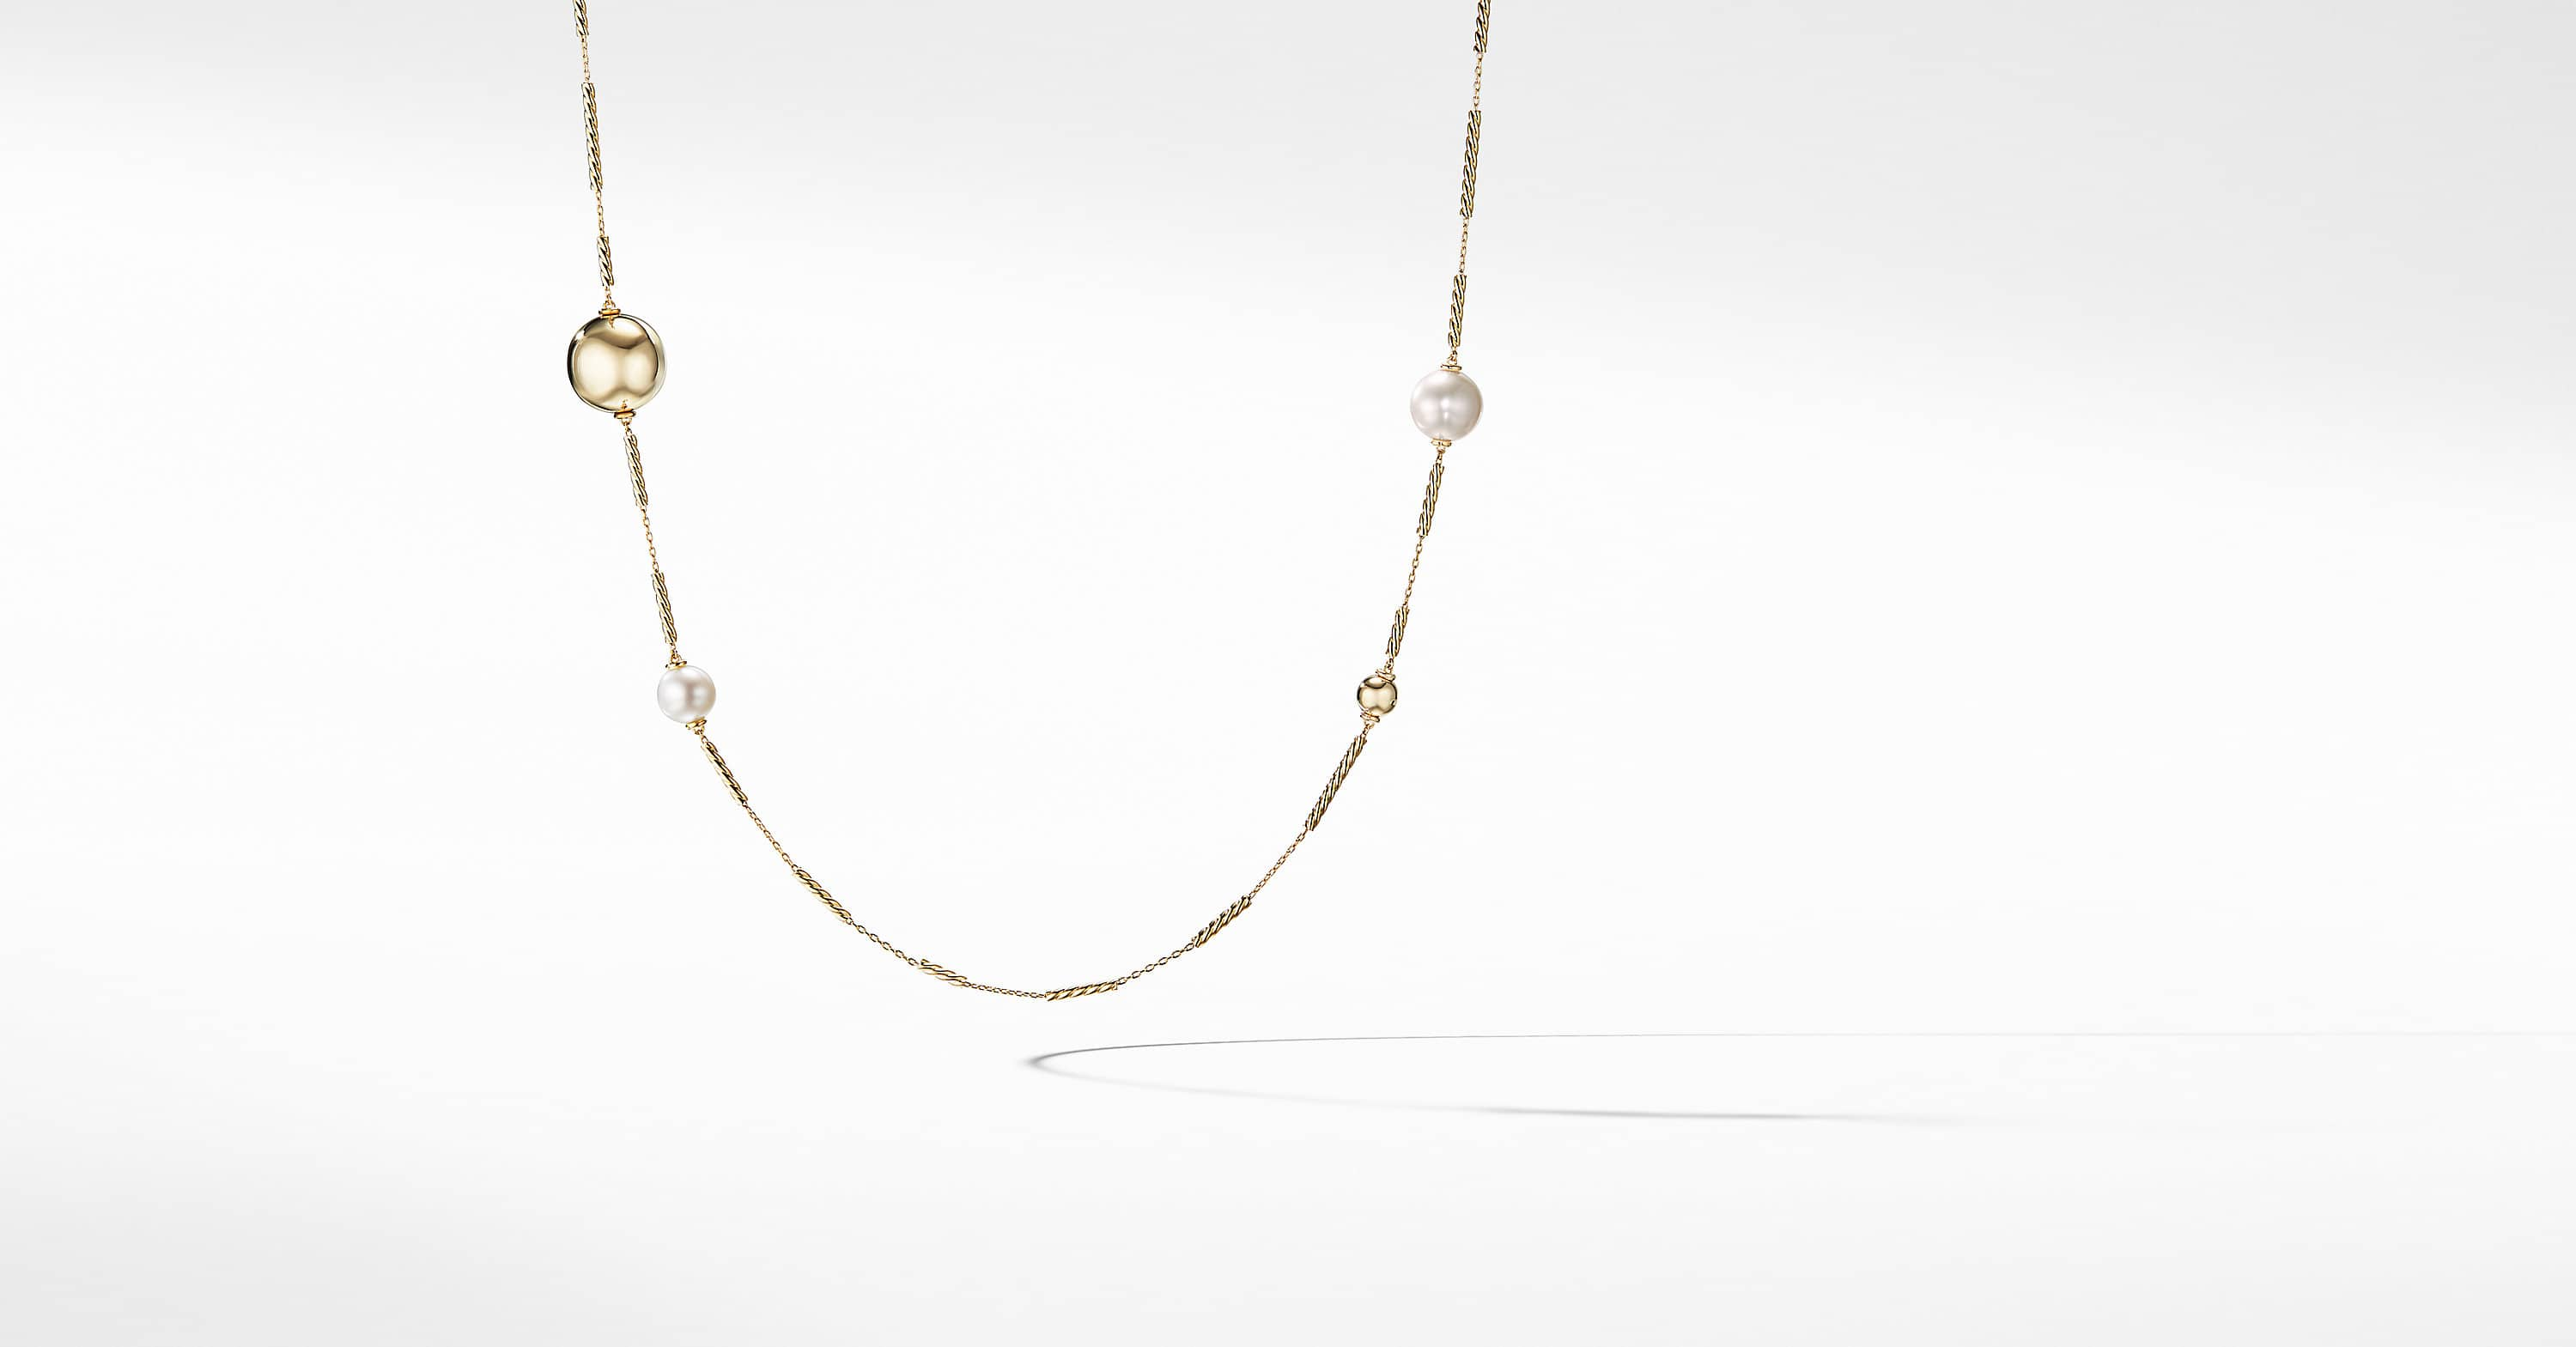 Solari Long Station Necklace in 18K Gold